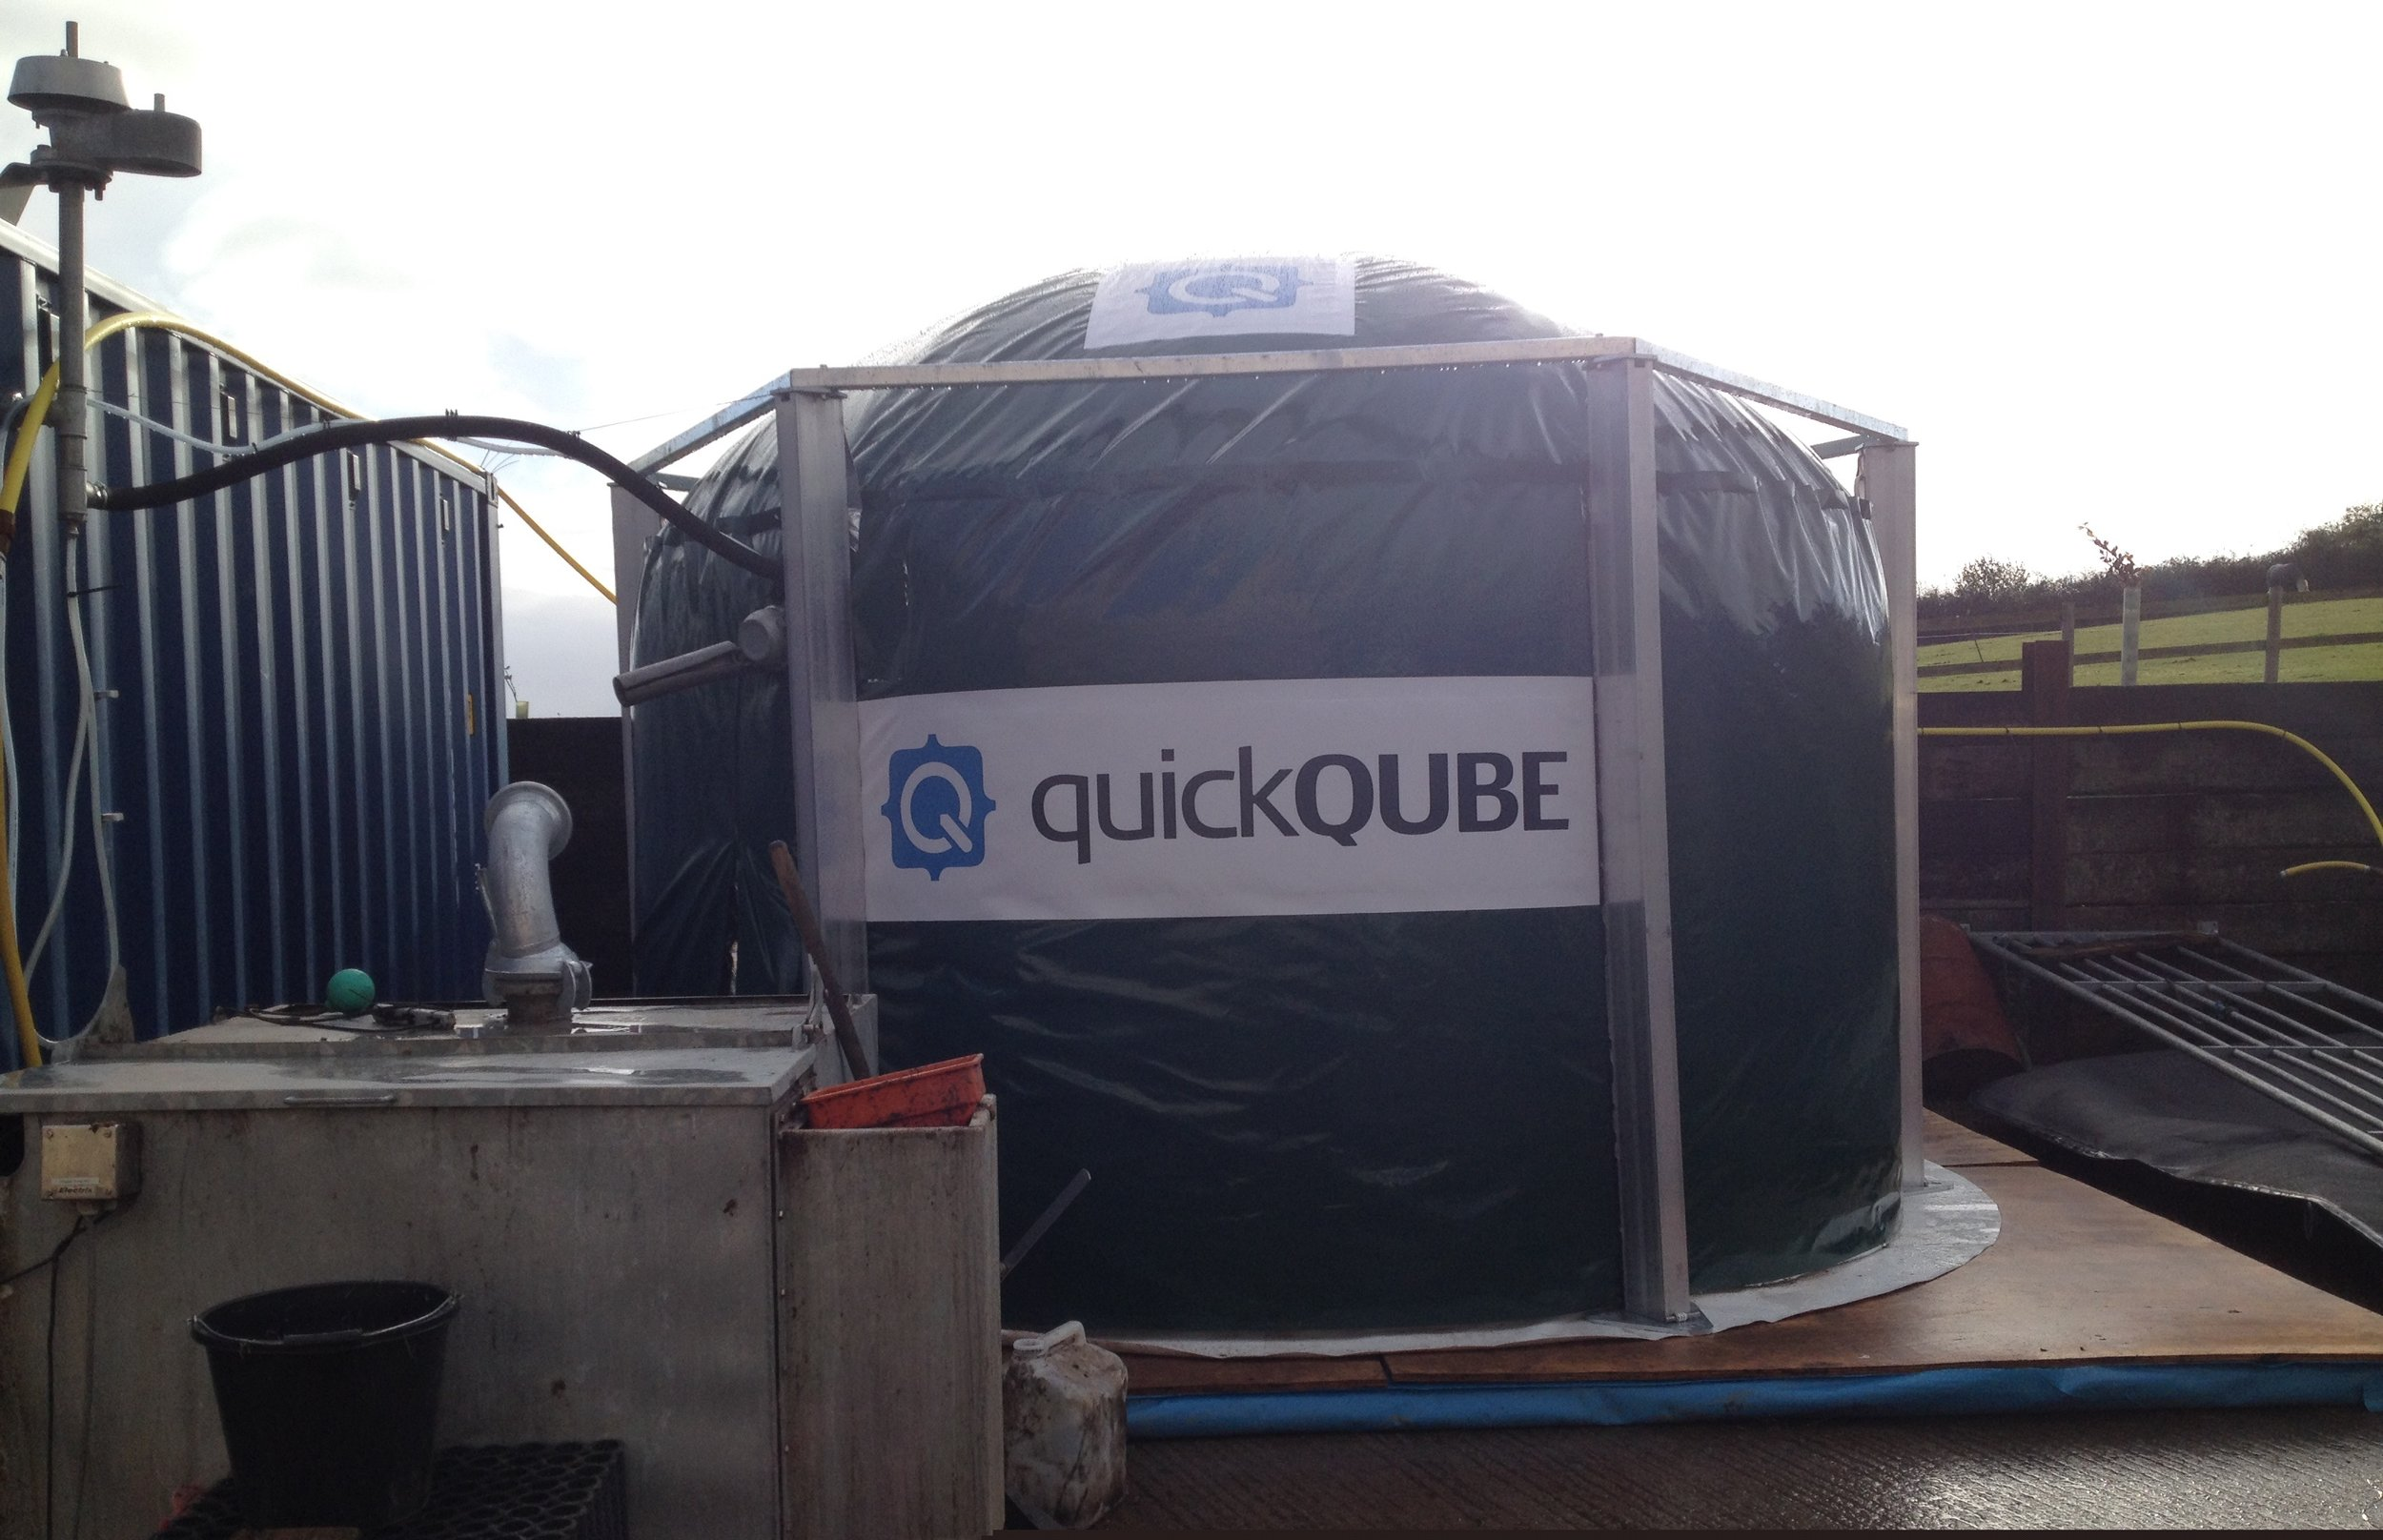 QUBE renewables - quickQUBE - The Green 20m3.JPG